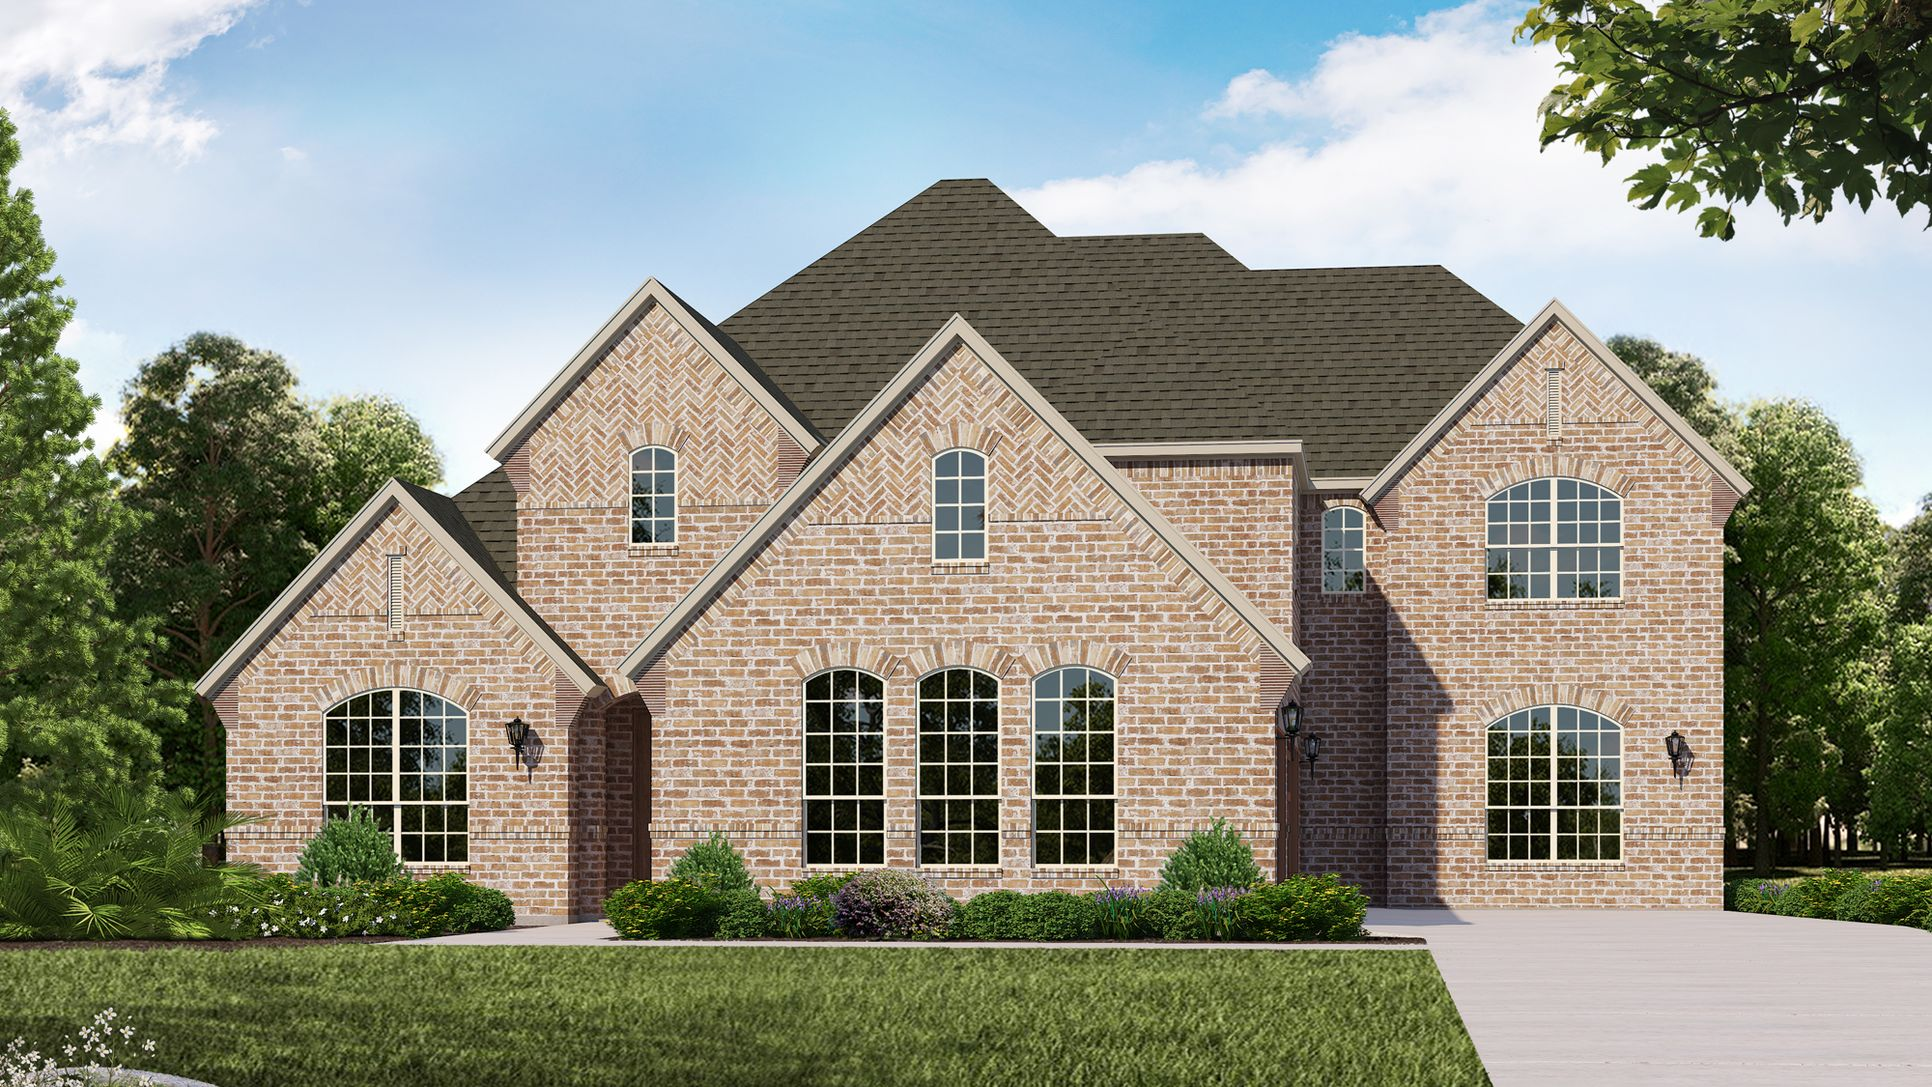 Exterior:Plan B820 Elevation A